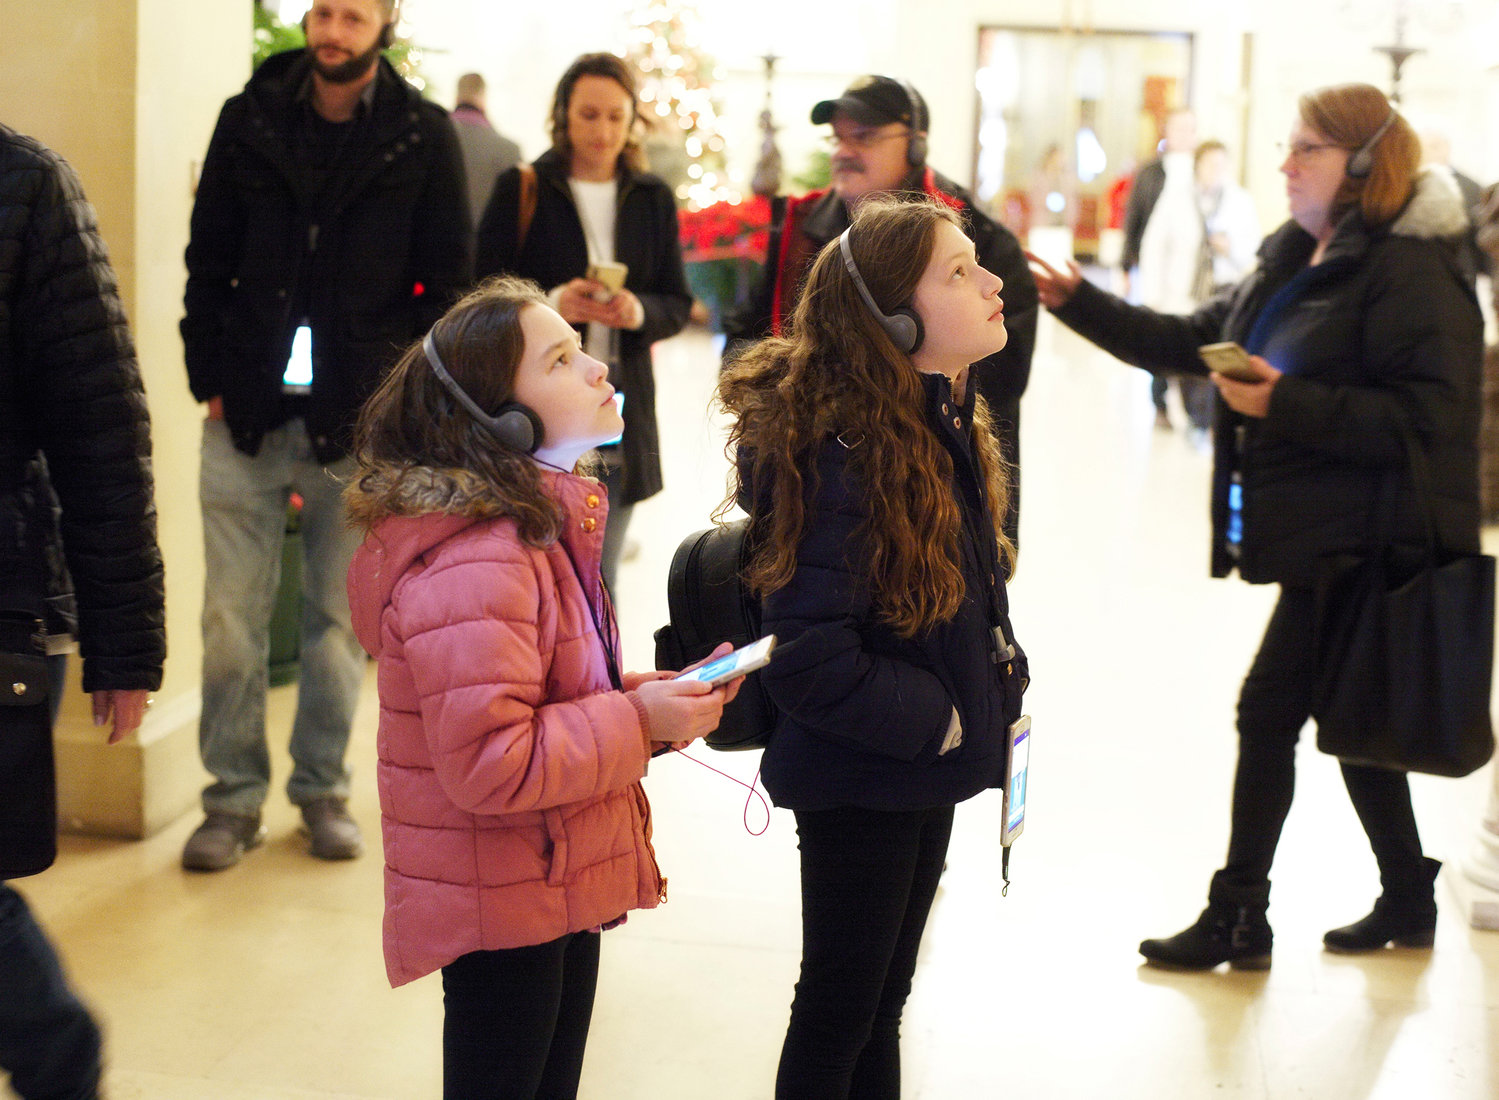 Children listen intently to the audio tour at The Breakers in Newport in December 2019.